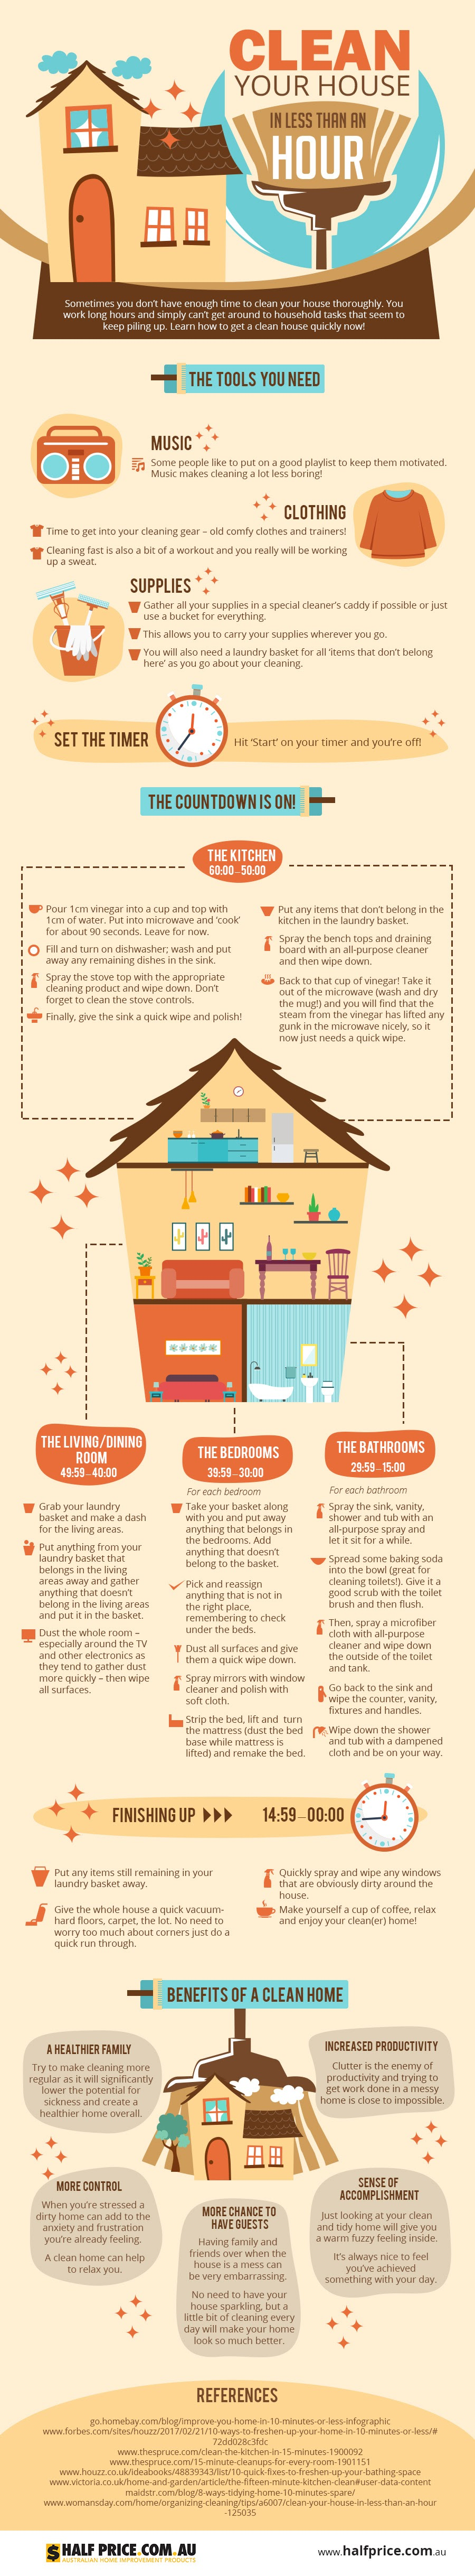 Cleaning Your Home in Less Than an Hour #infographic